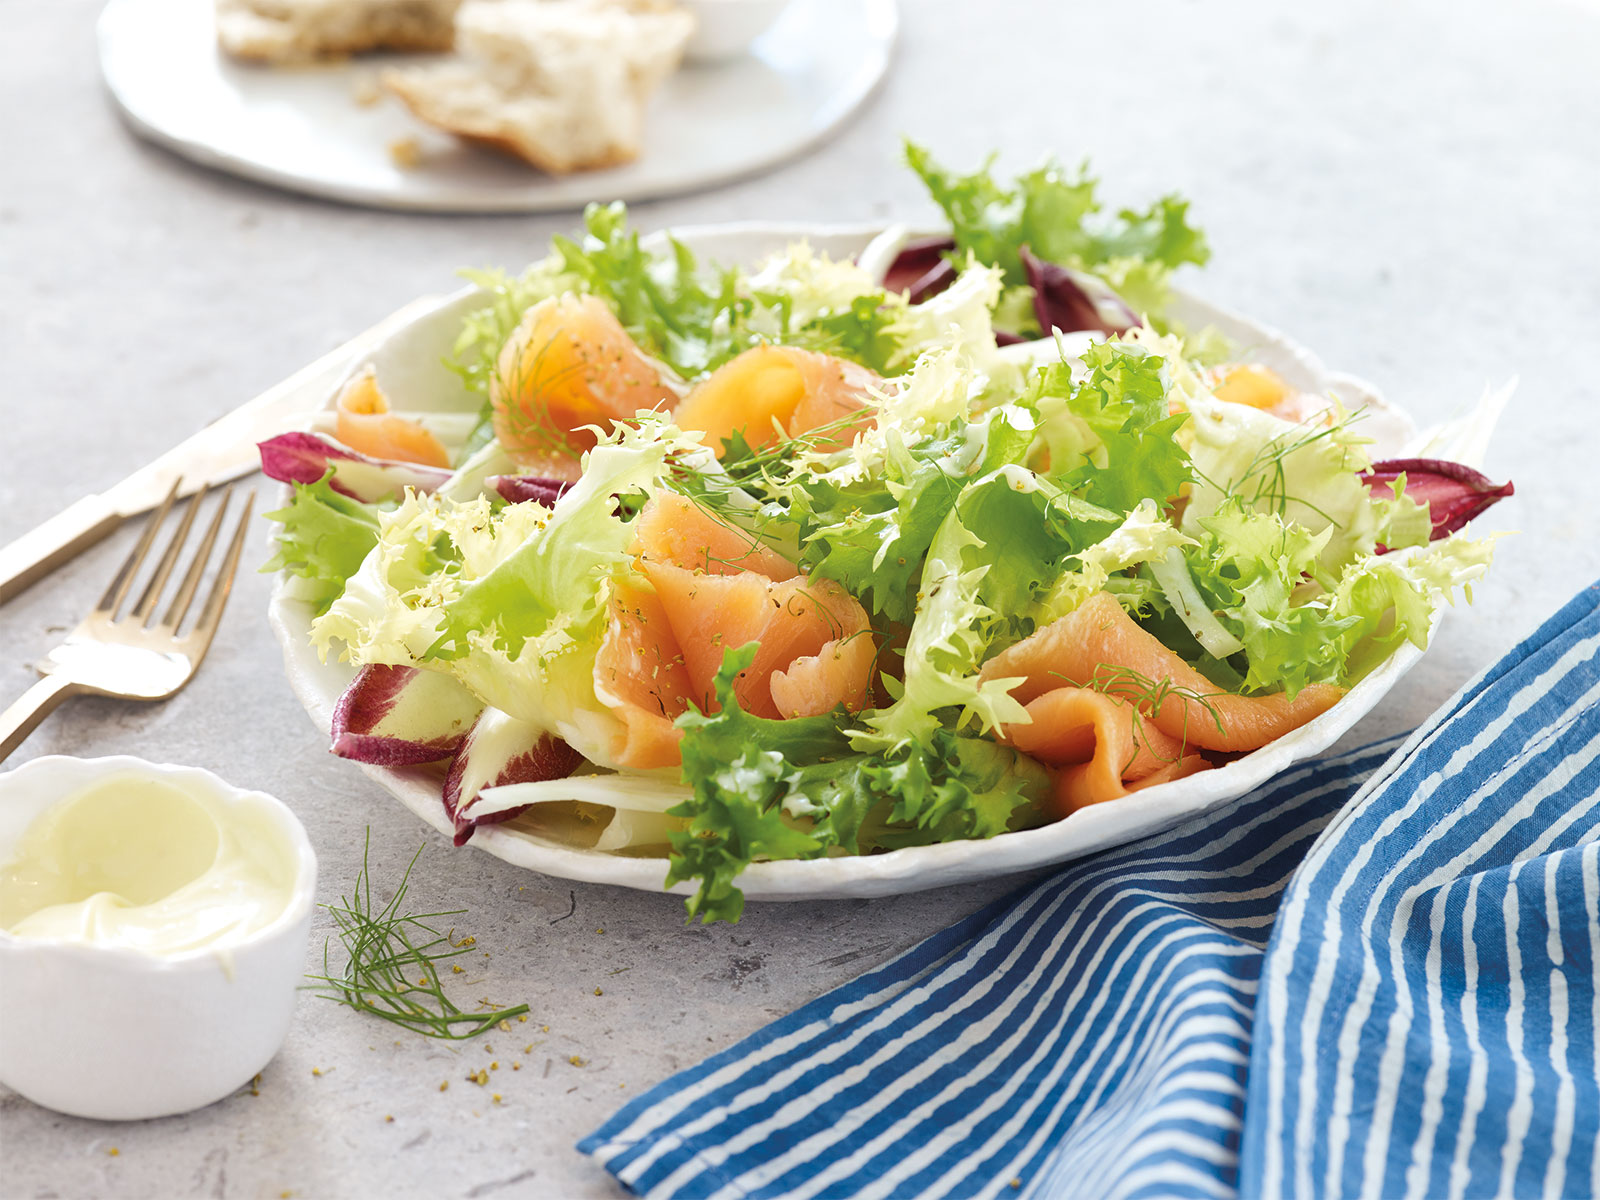 Smoked Salmon with Fennel and Endive Salad